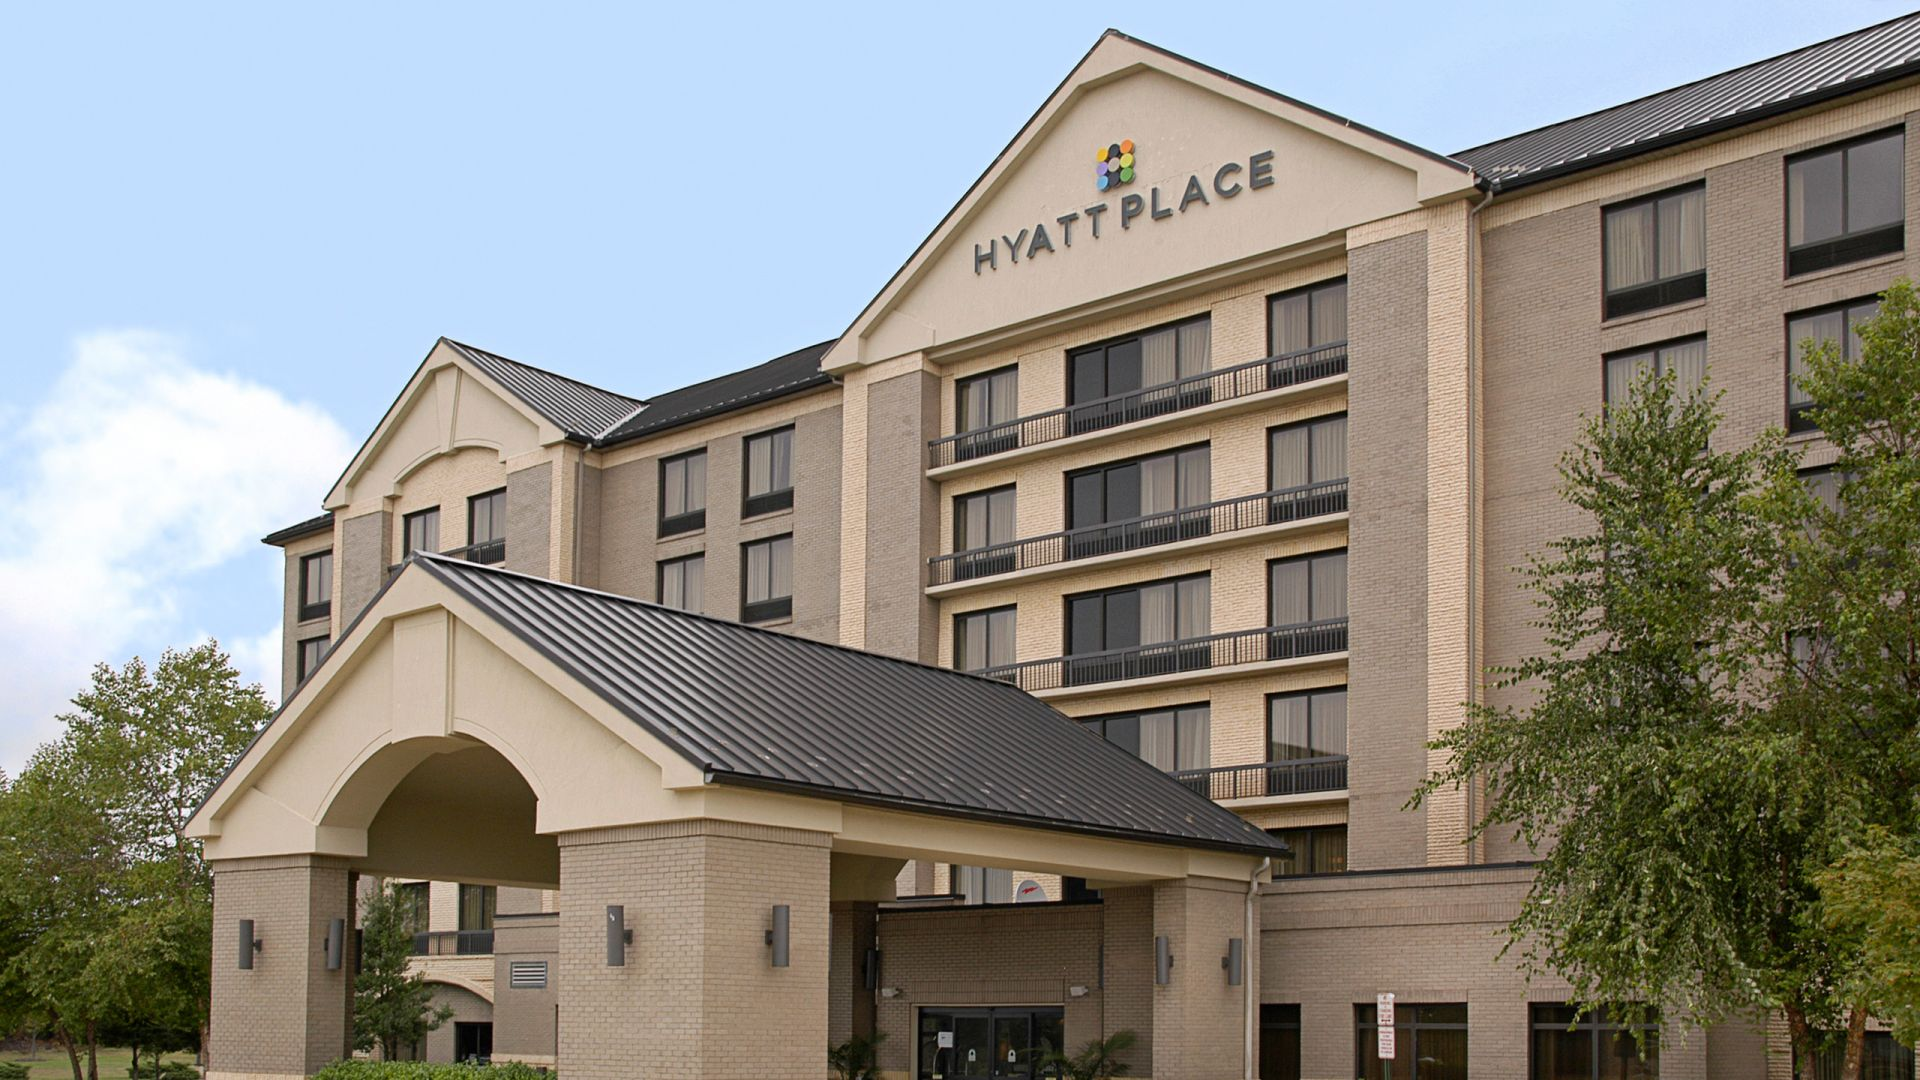 Hyatt Place Kansas City Airport Exterior